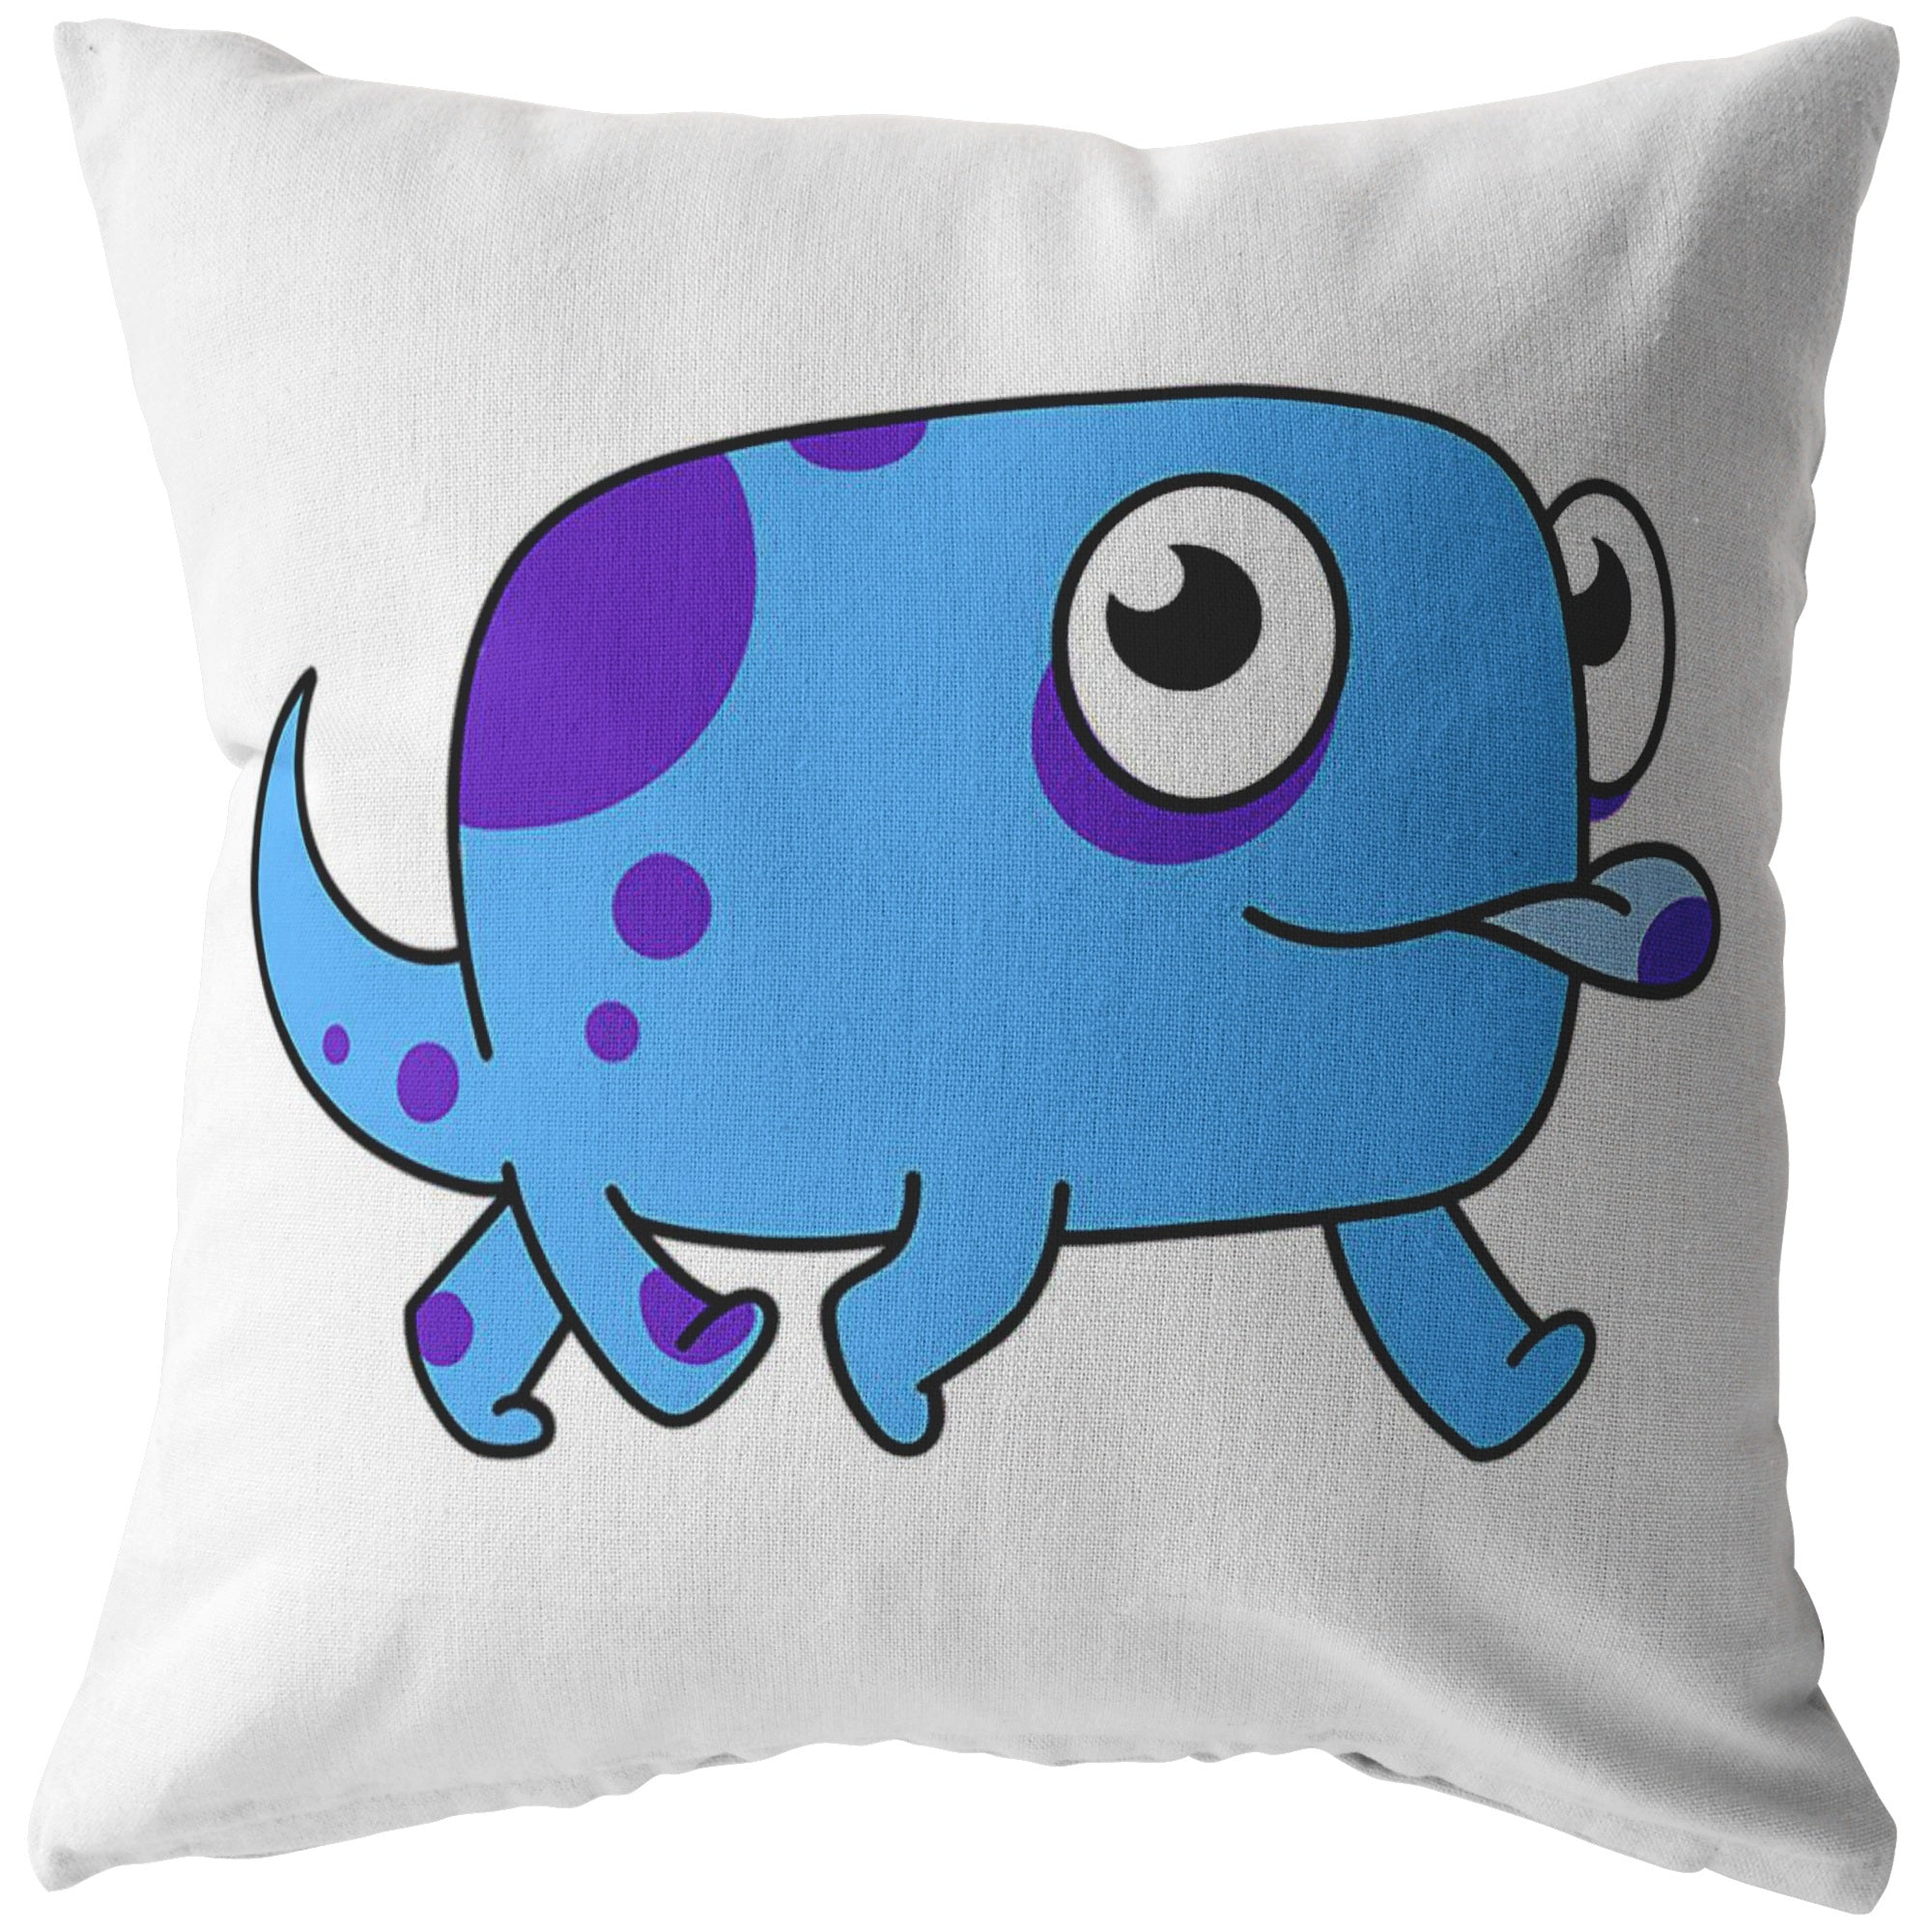 Hashi the Hashimoto's Disease Monster Pillow